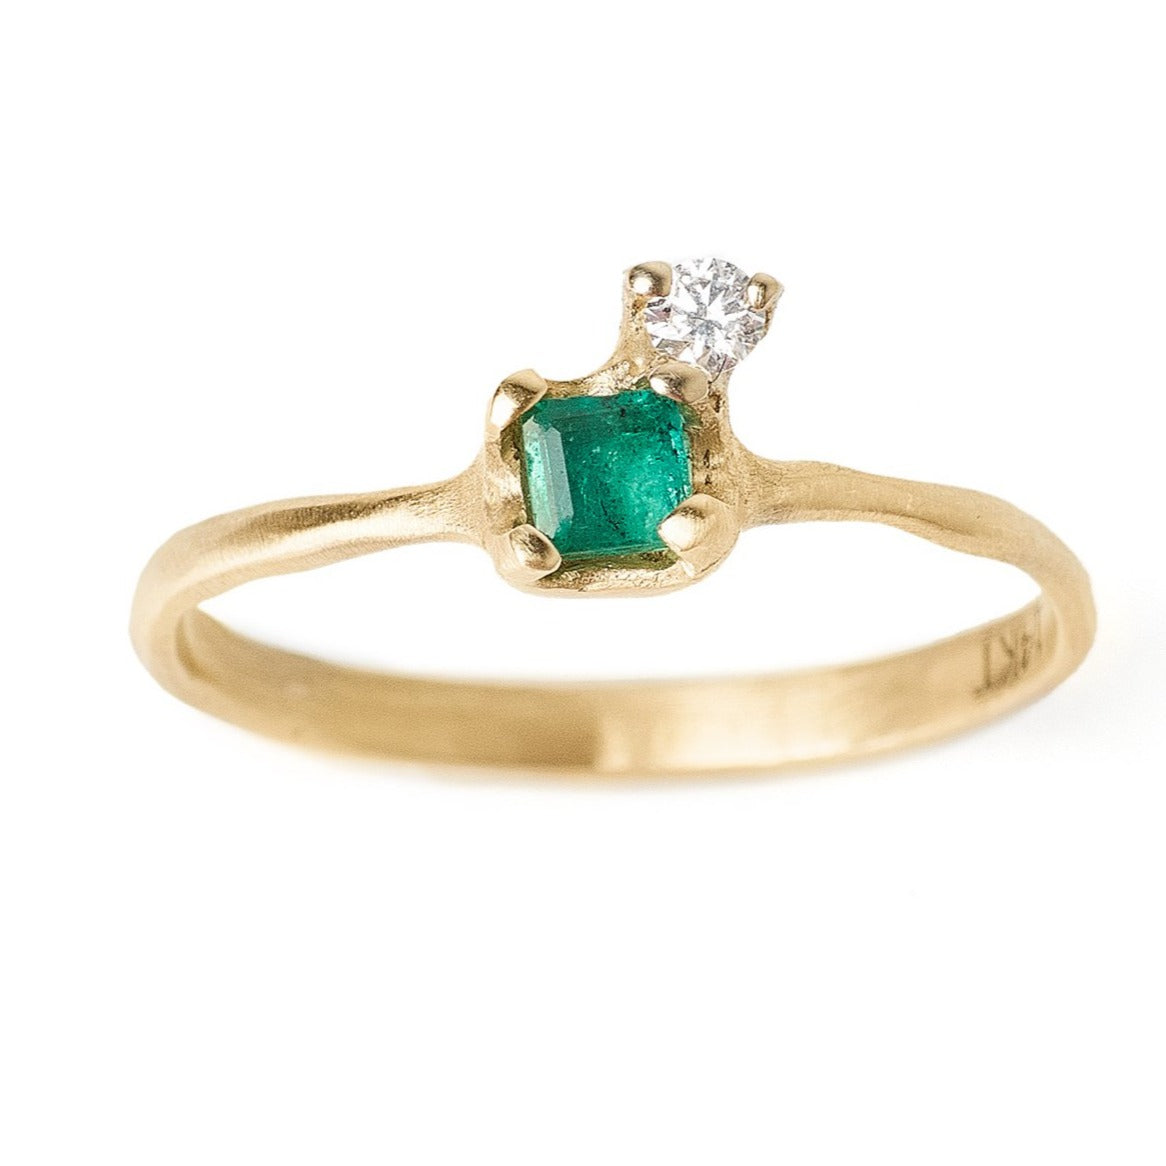 Emerald and diamond ring. Affordable alternative engagement ring set in 14kt yellow gold